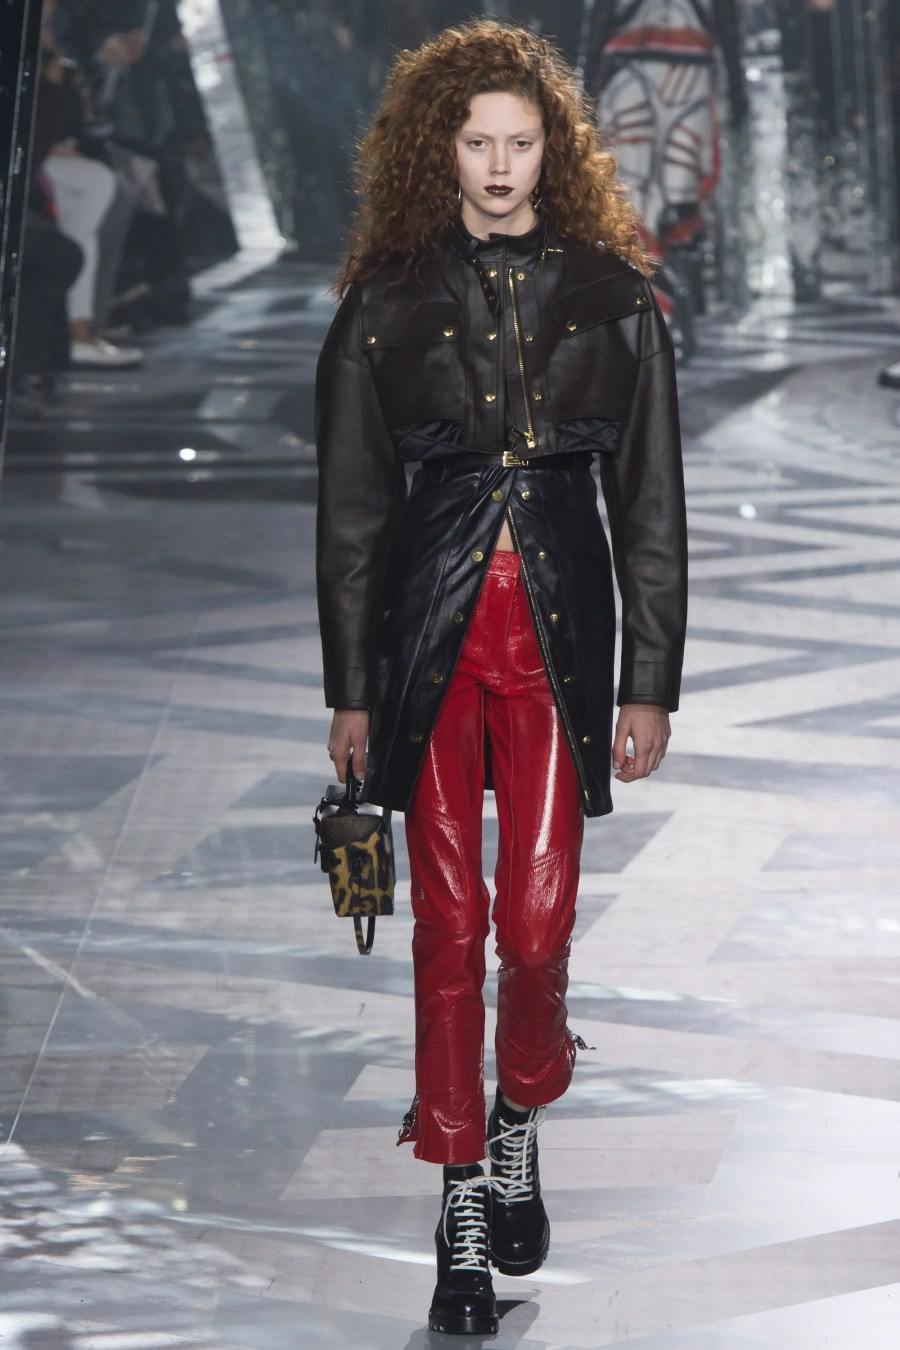 Image result for 80's jackets runway